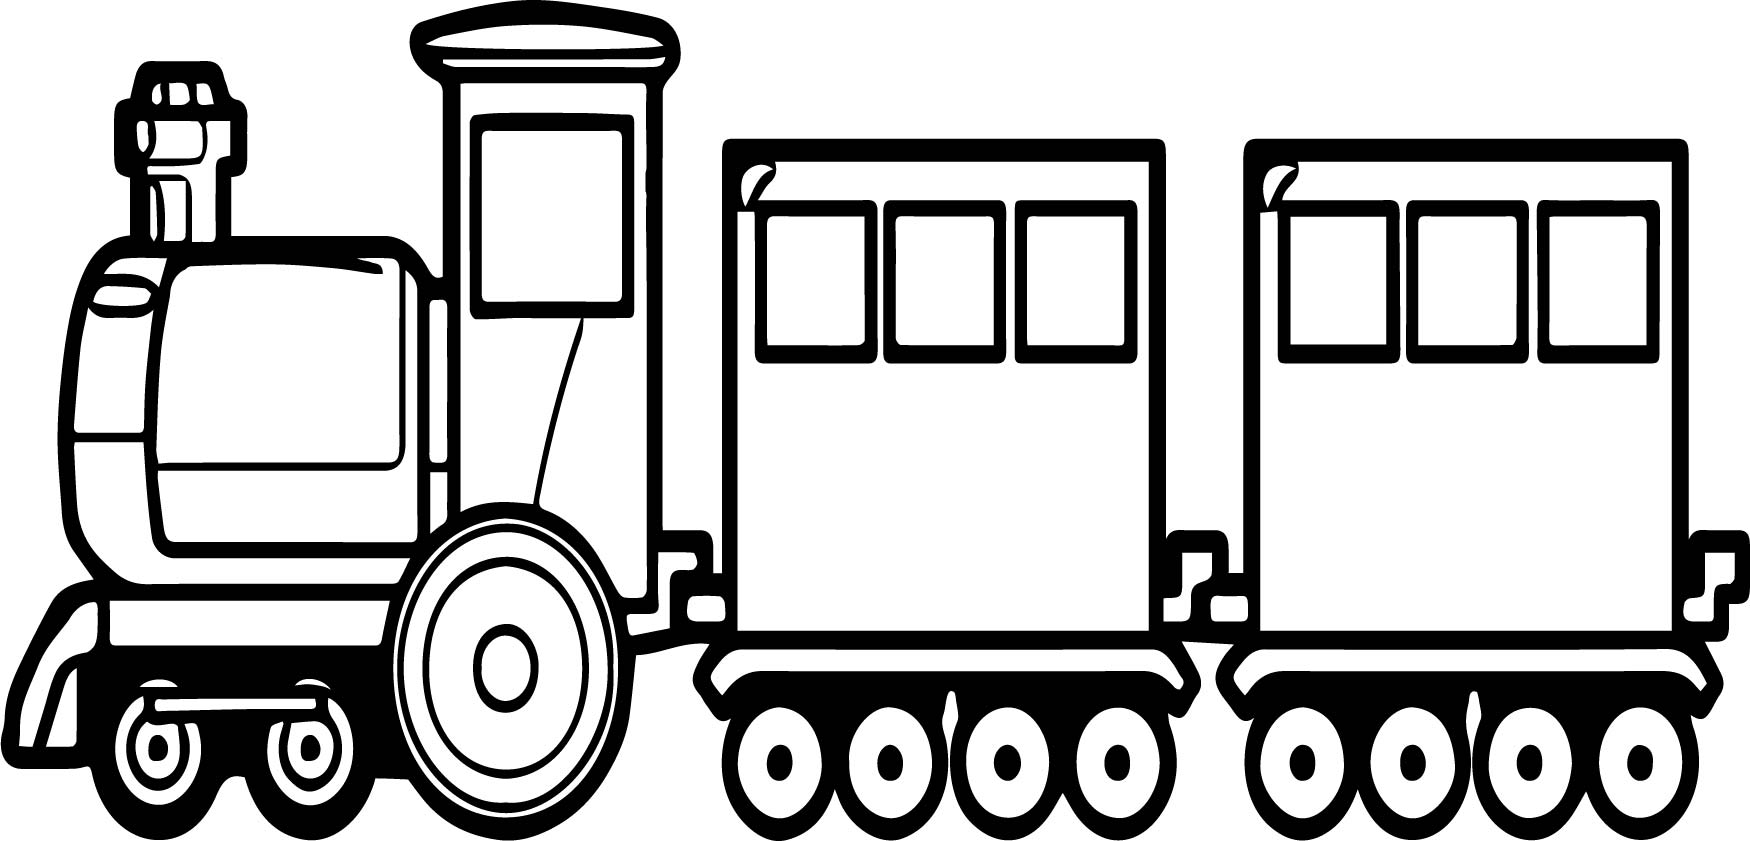 printable coloring pages trains free printable train coloring pages coloring home coloring trains pages printable